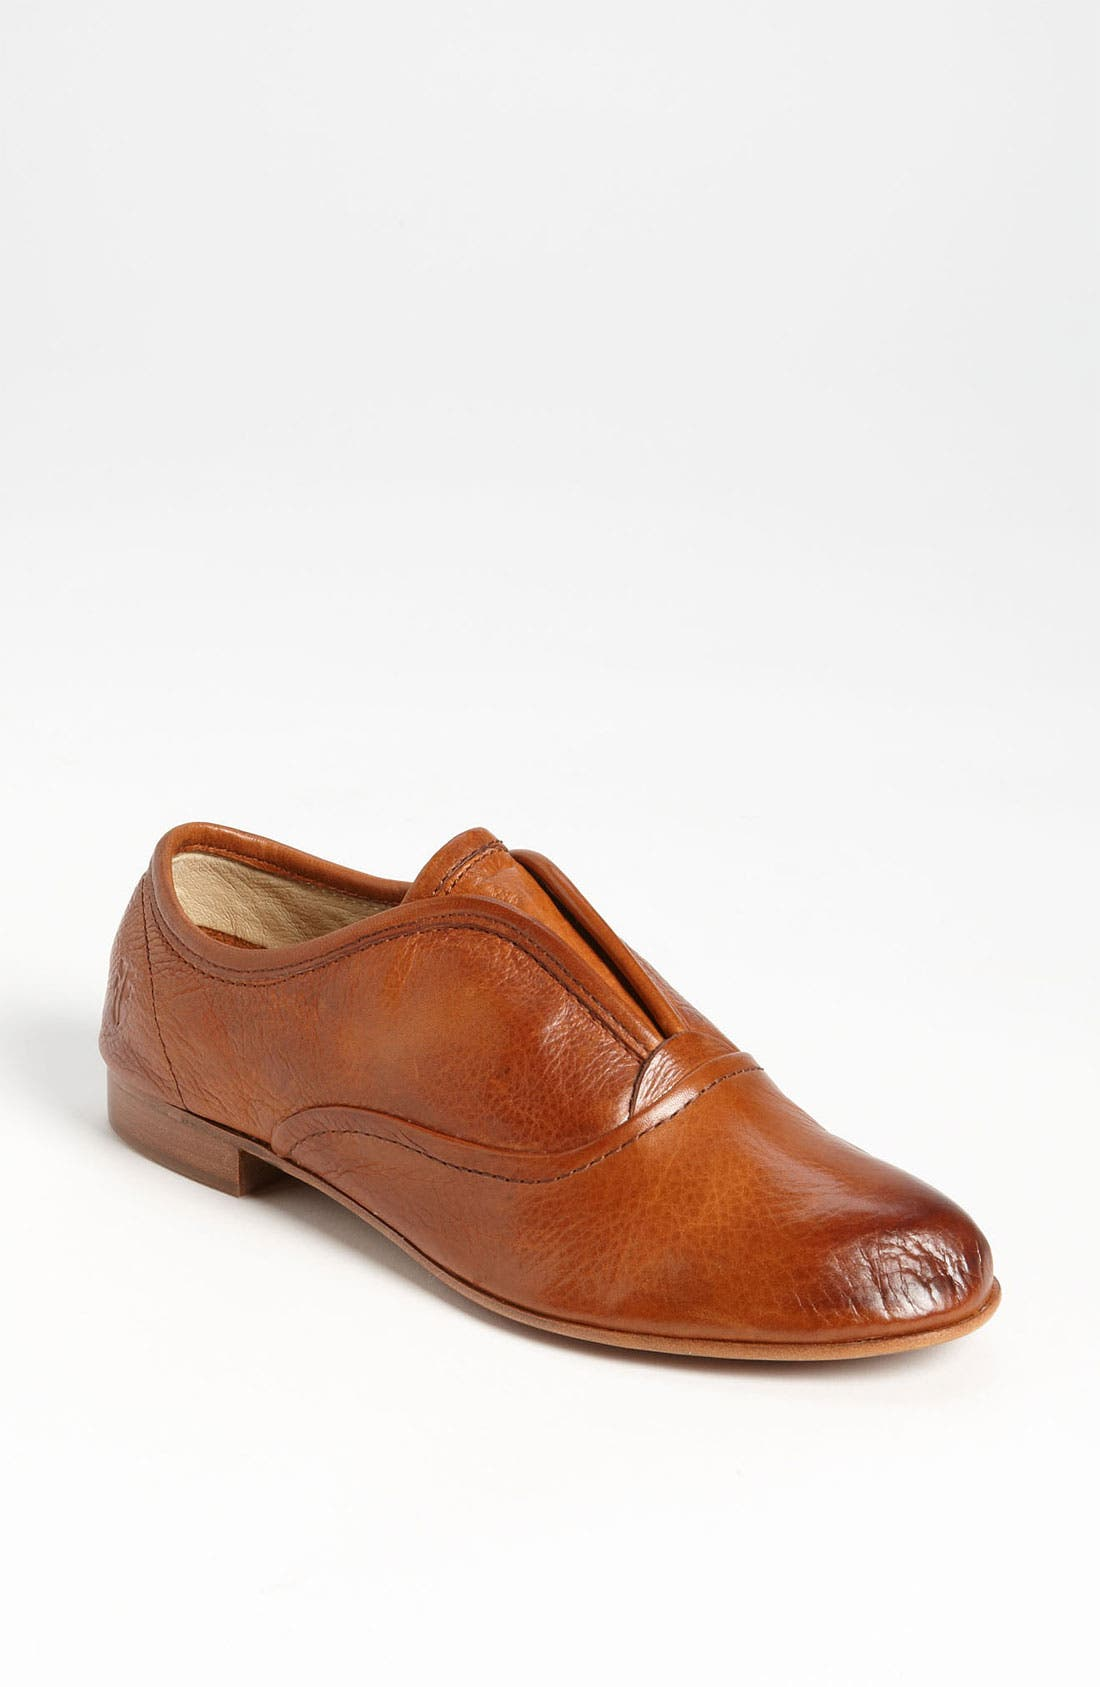 Alternate Image 1 Selected - Frye 'Jillian' Flat